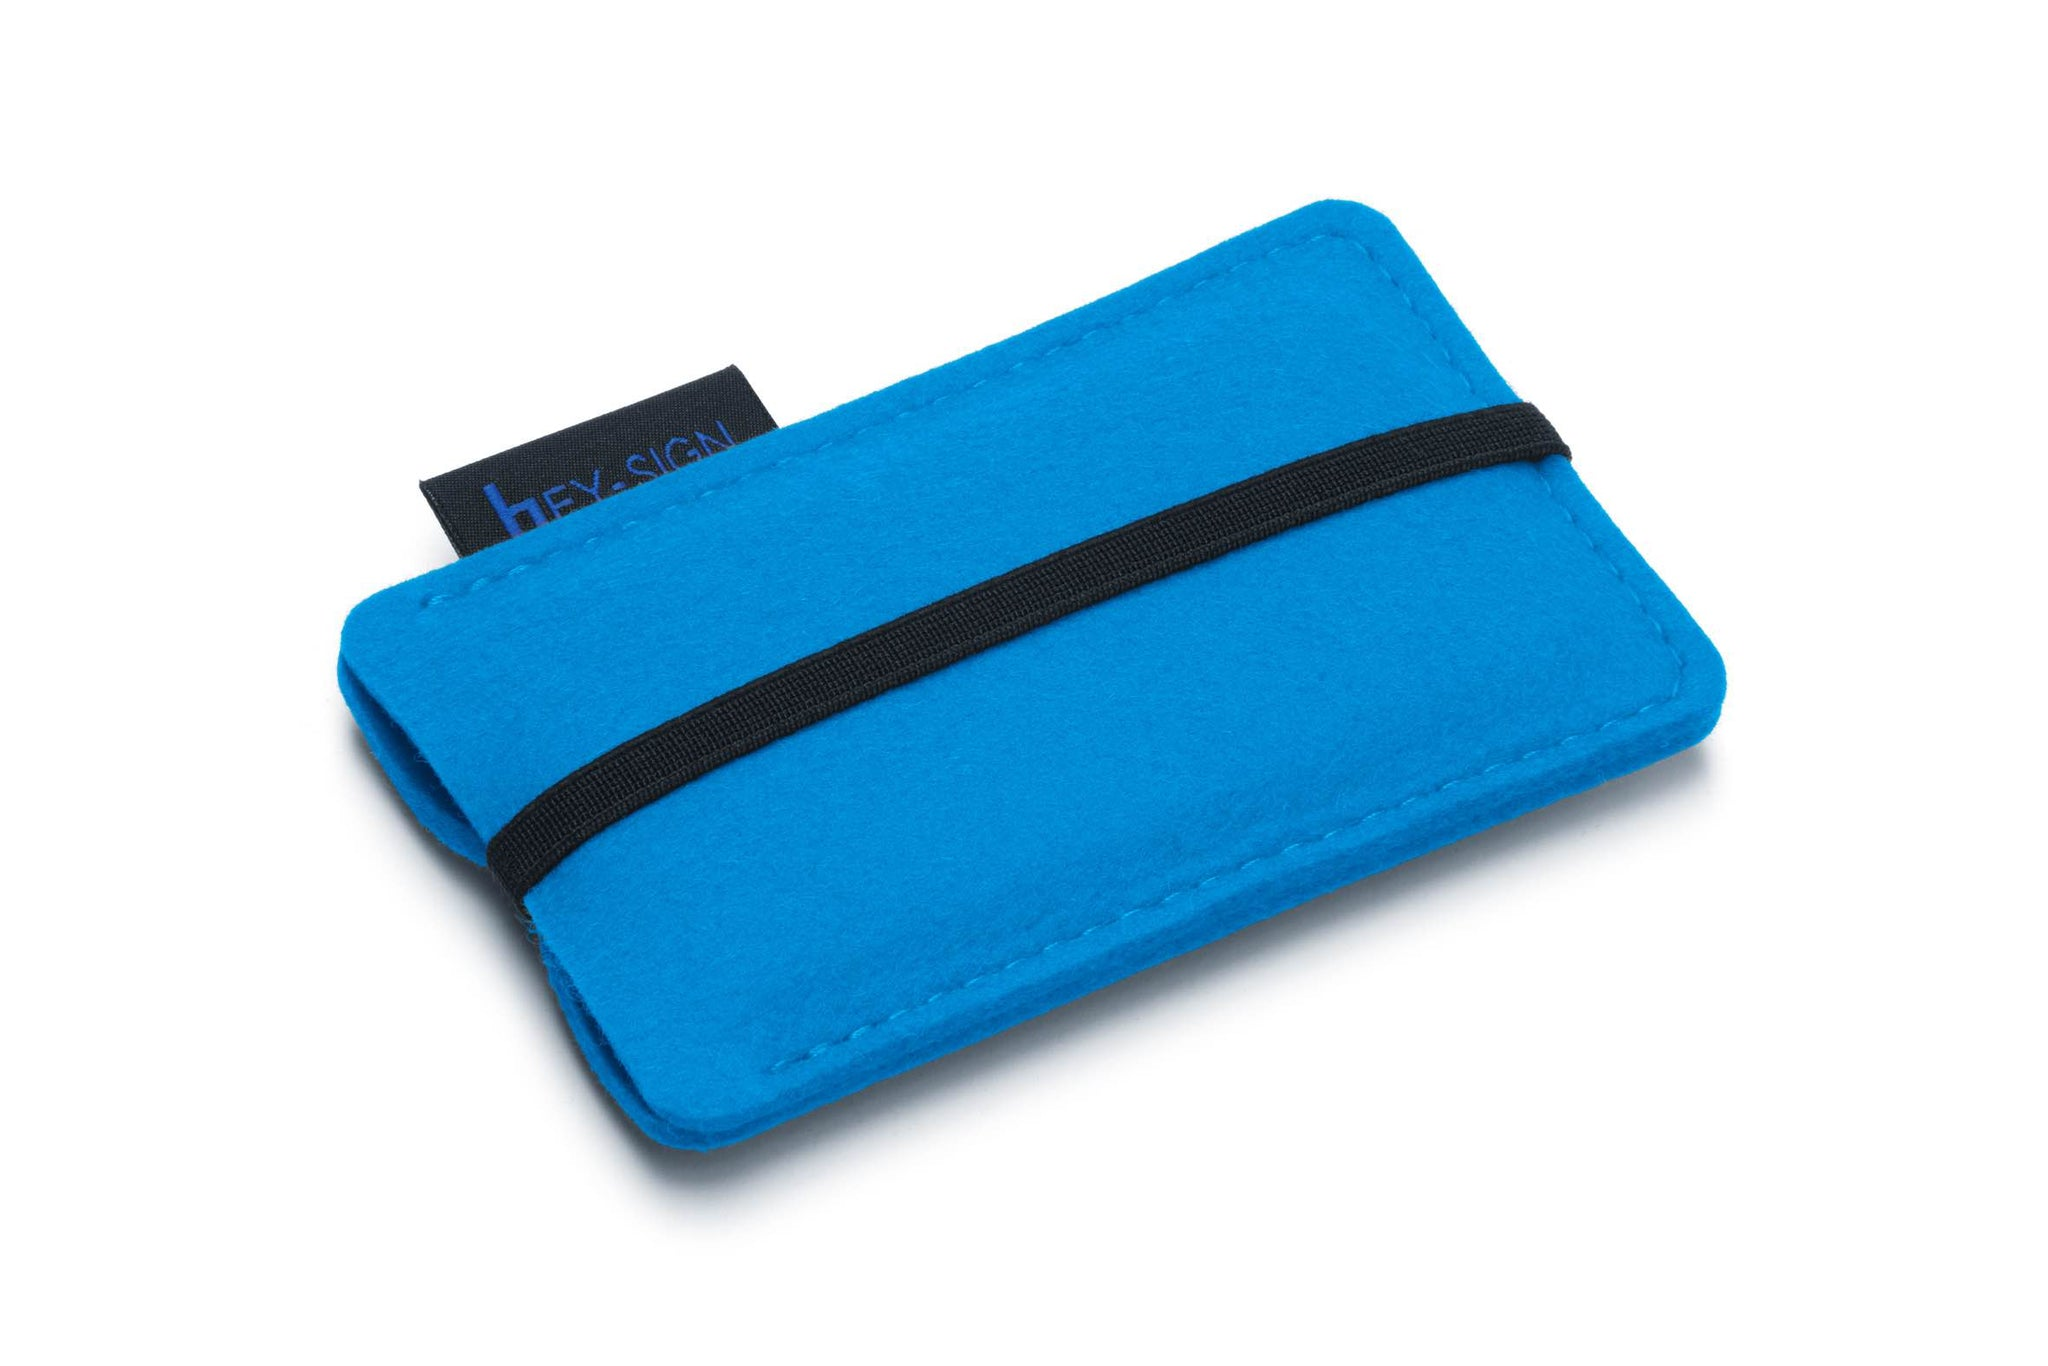 Felt Smartphone Sleeve or Pouch in Petrol-Blue by Hey-Sign 301031434